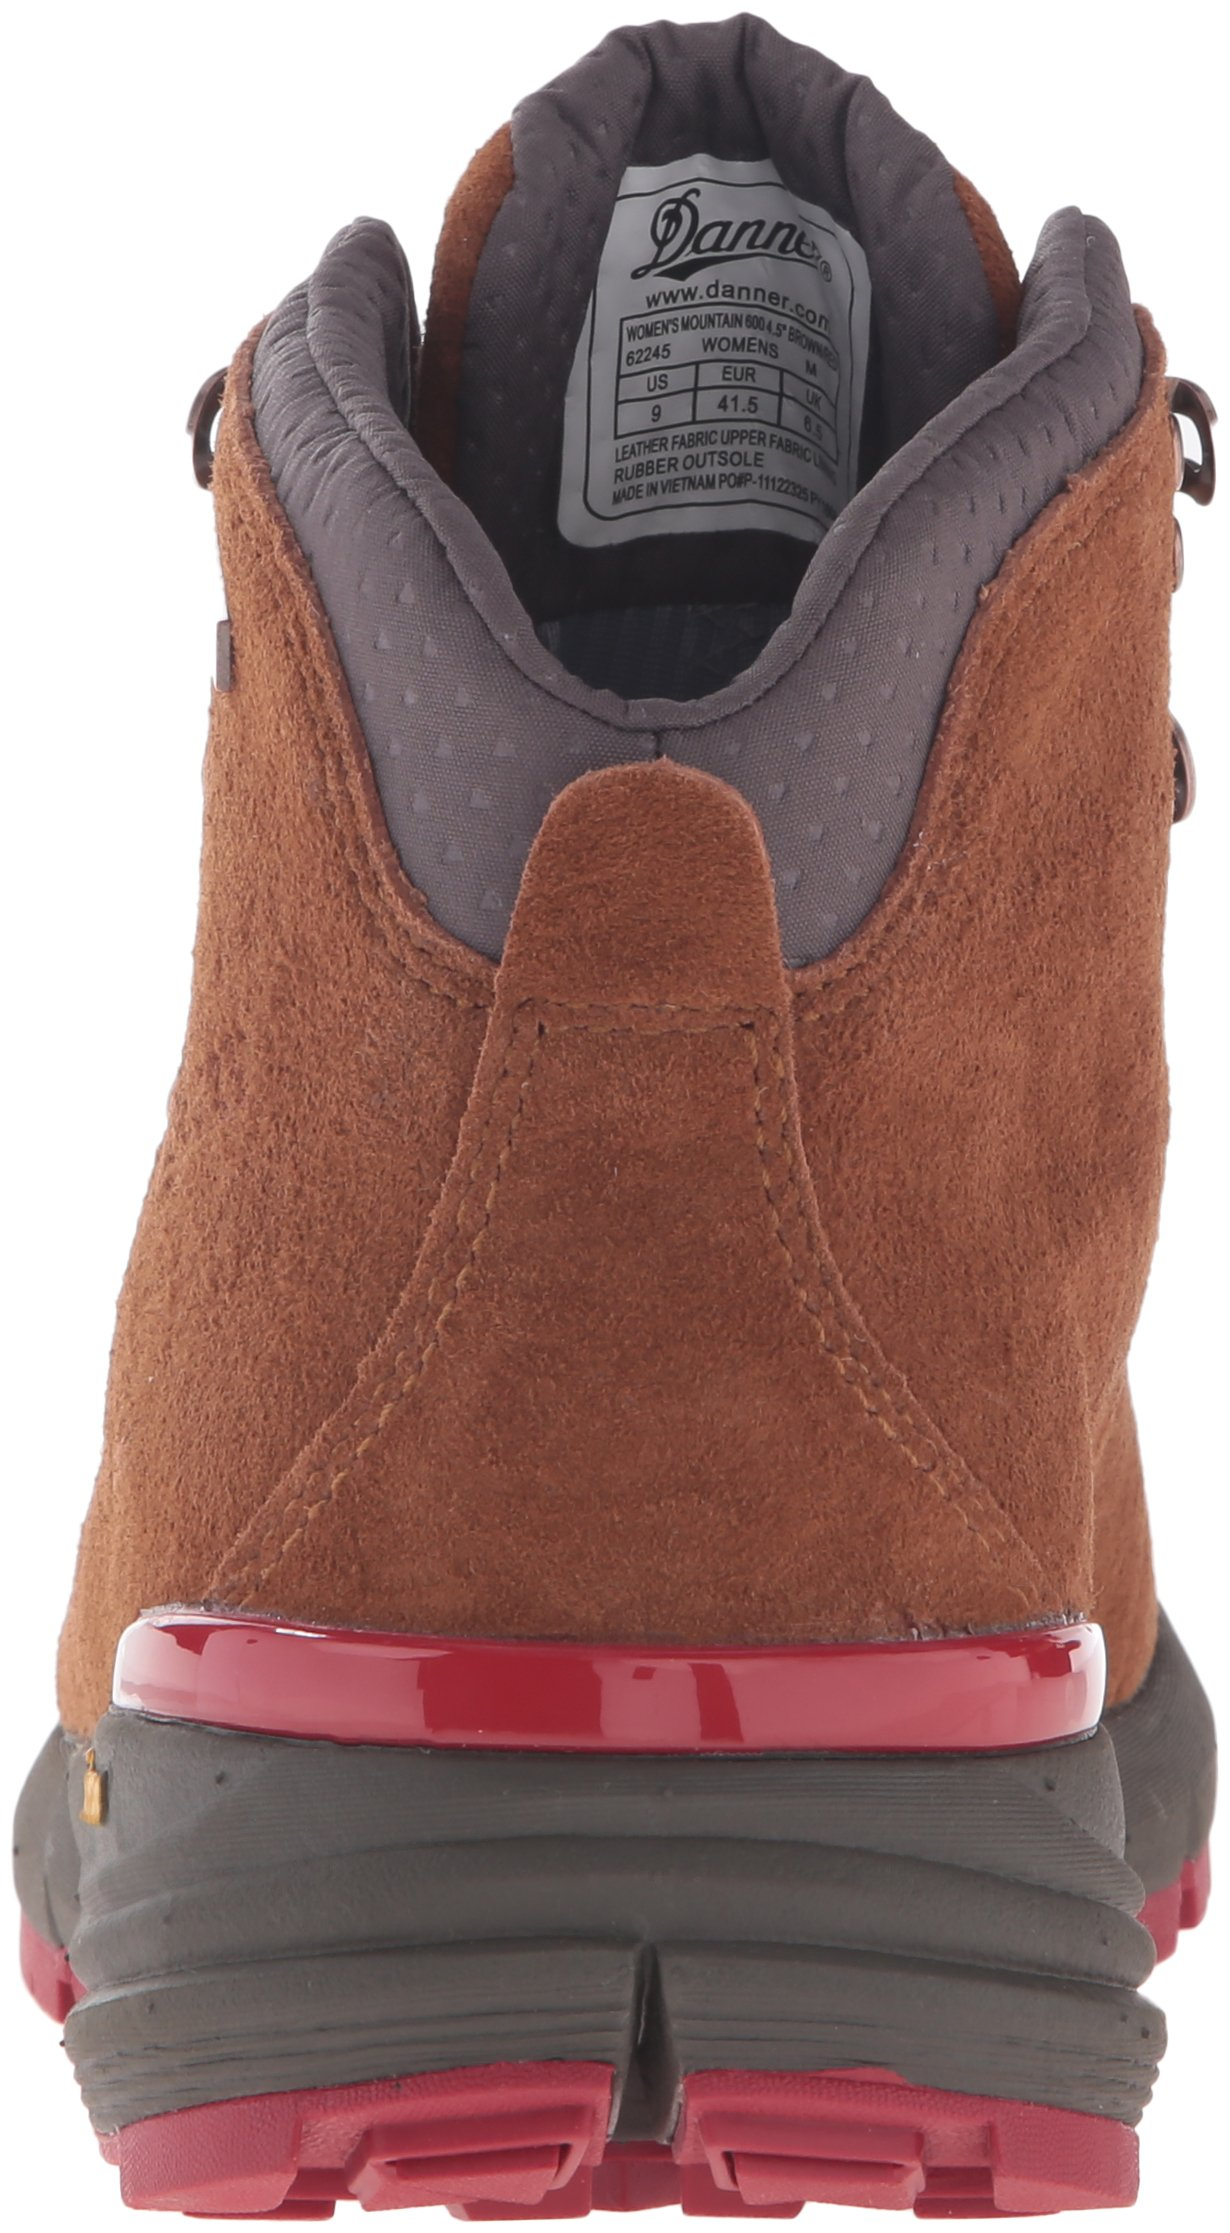 Danner Women's Mountain 600 4.5'' Hiking Boot, Brown/Red, 8.5 M US by Danner (Image #2)